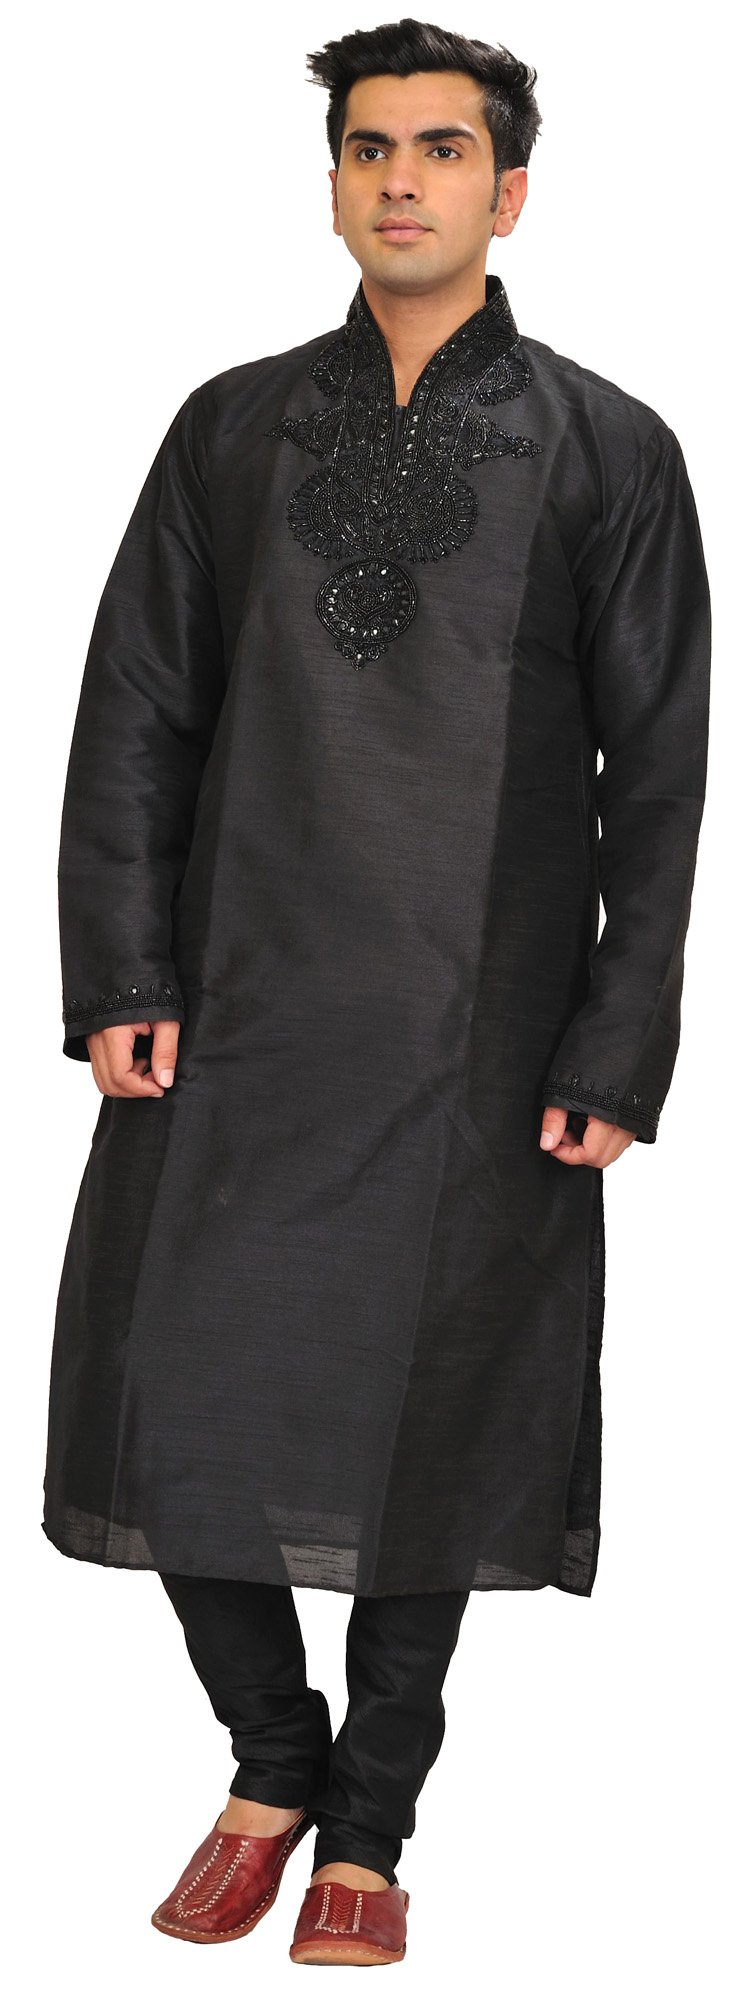 Exotic India Jet-Black Wedding Kurta Pajama Set With Be Size 42